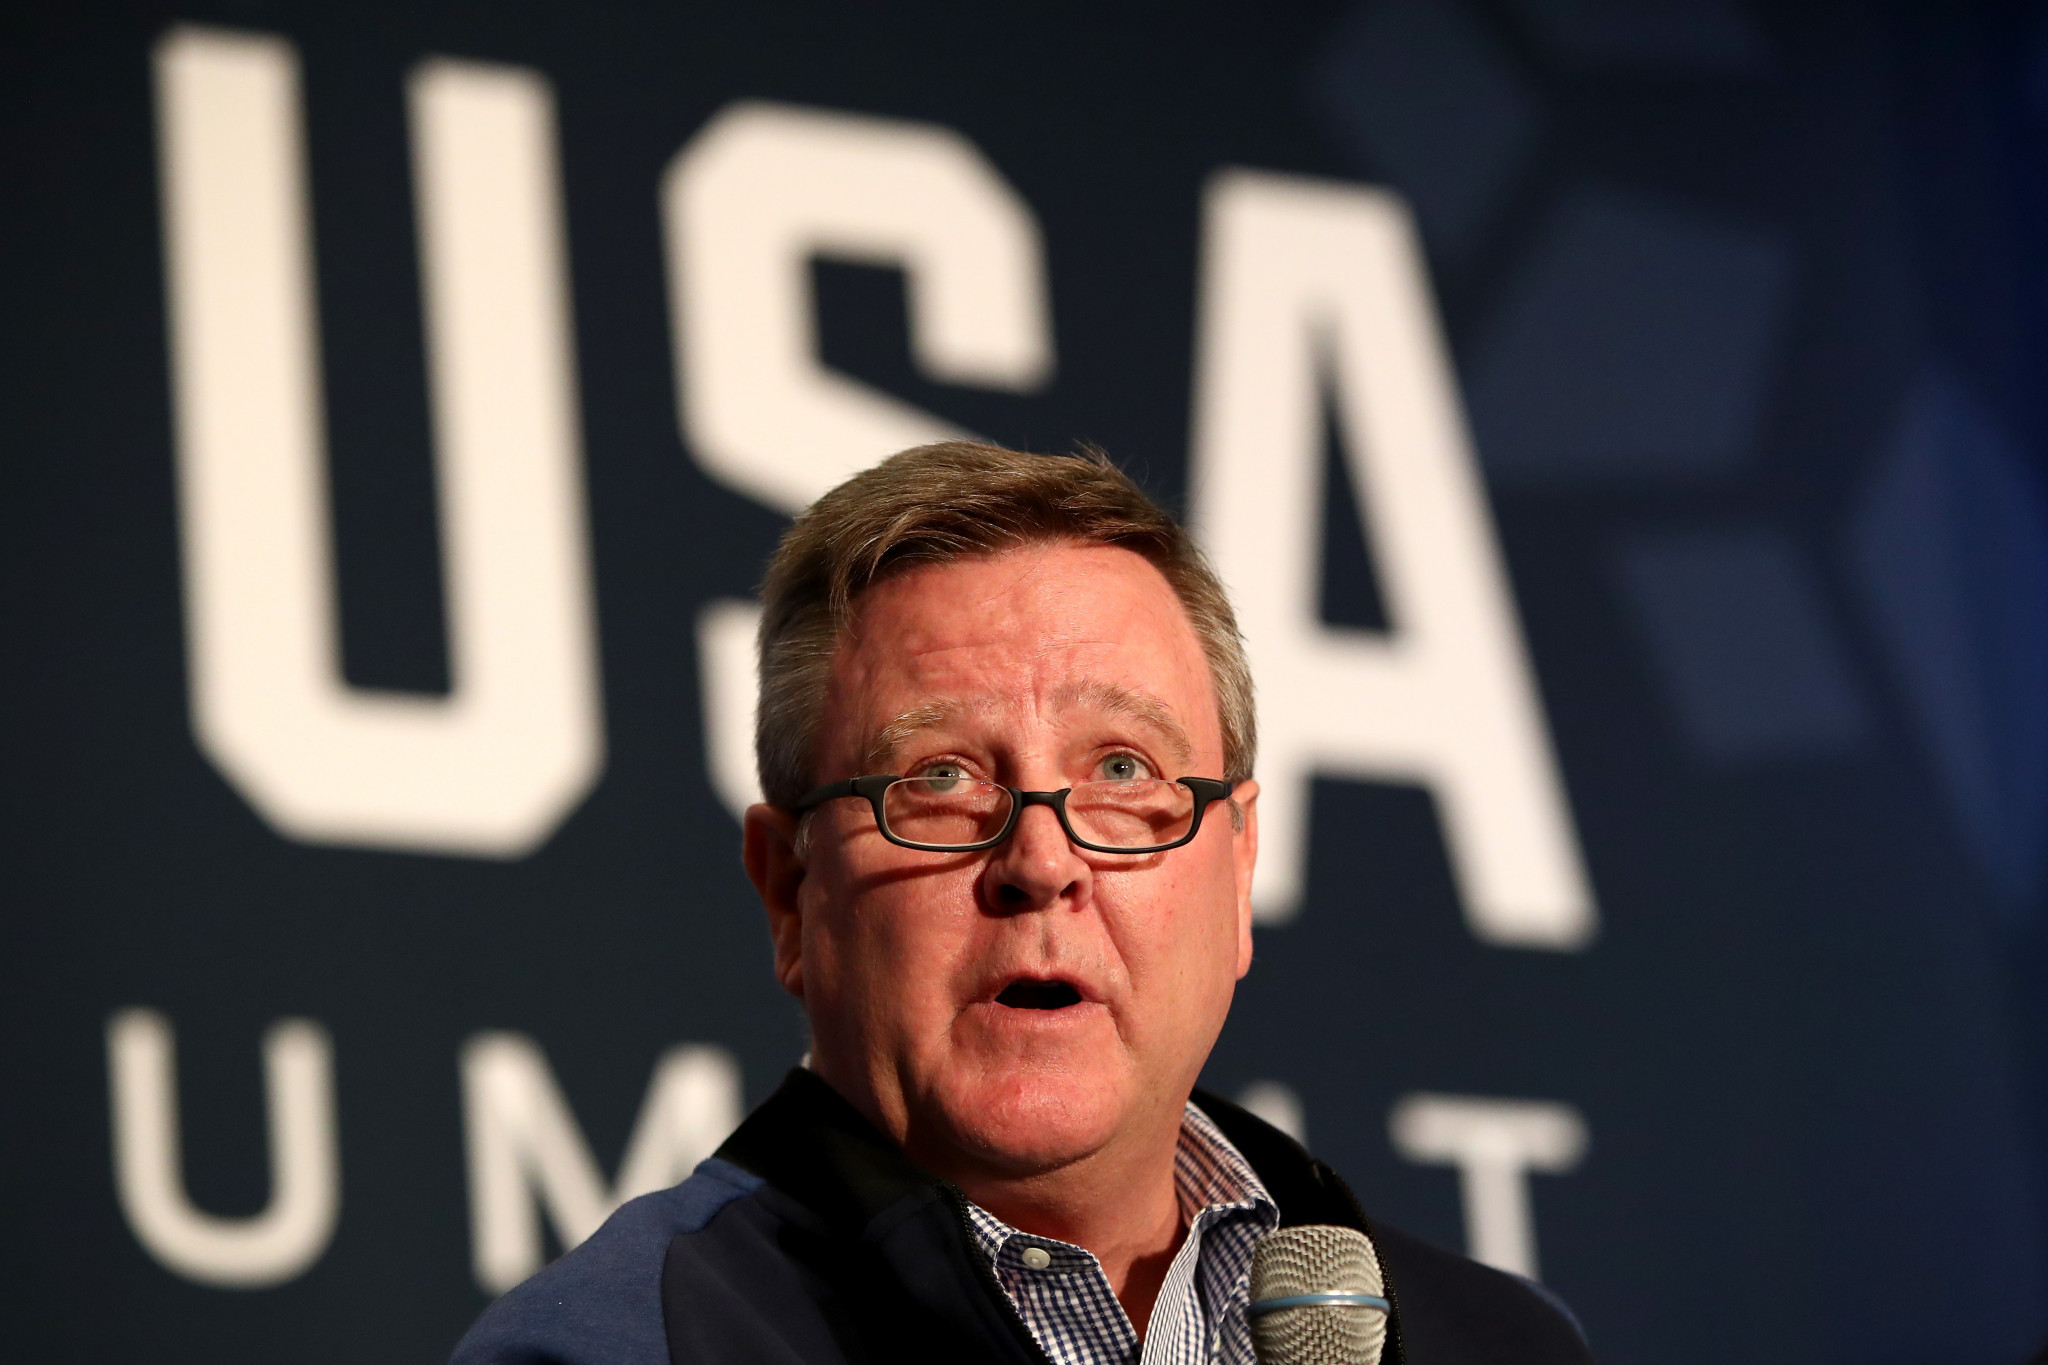 Correspondence between the IOC and USOC chief executive Scott Blackmun is also published ©Getty Images